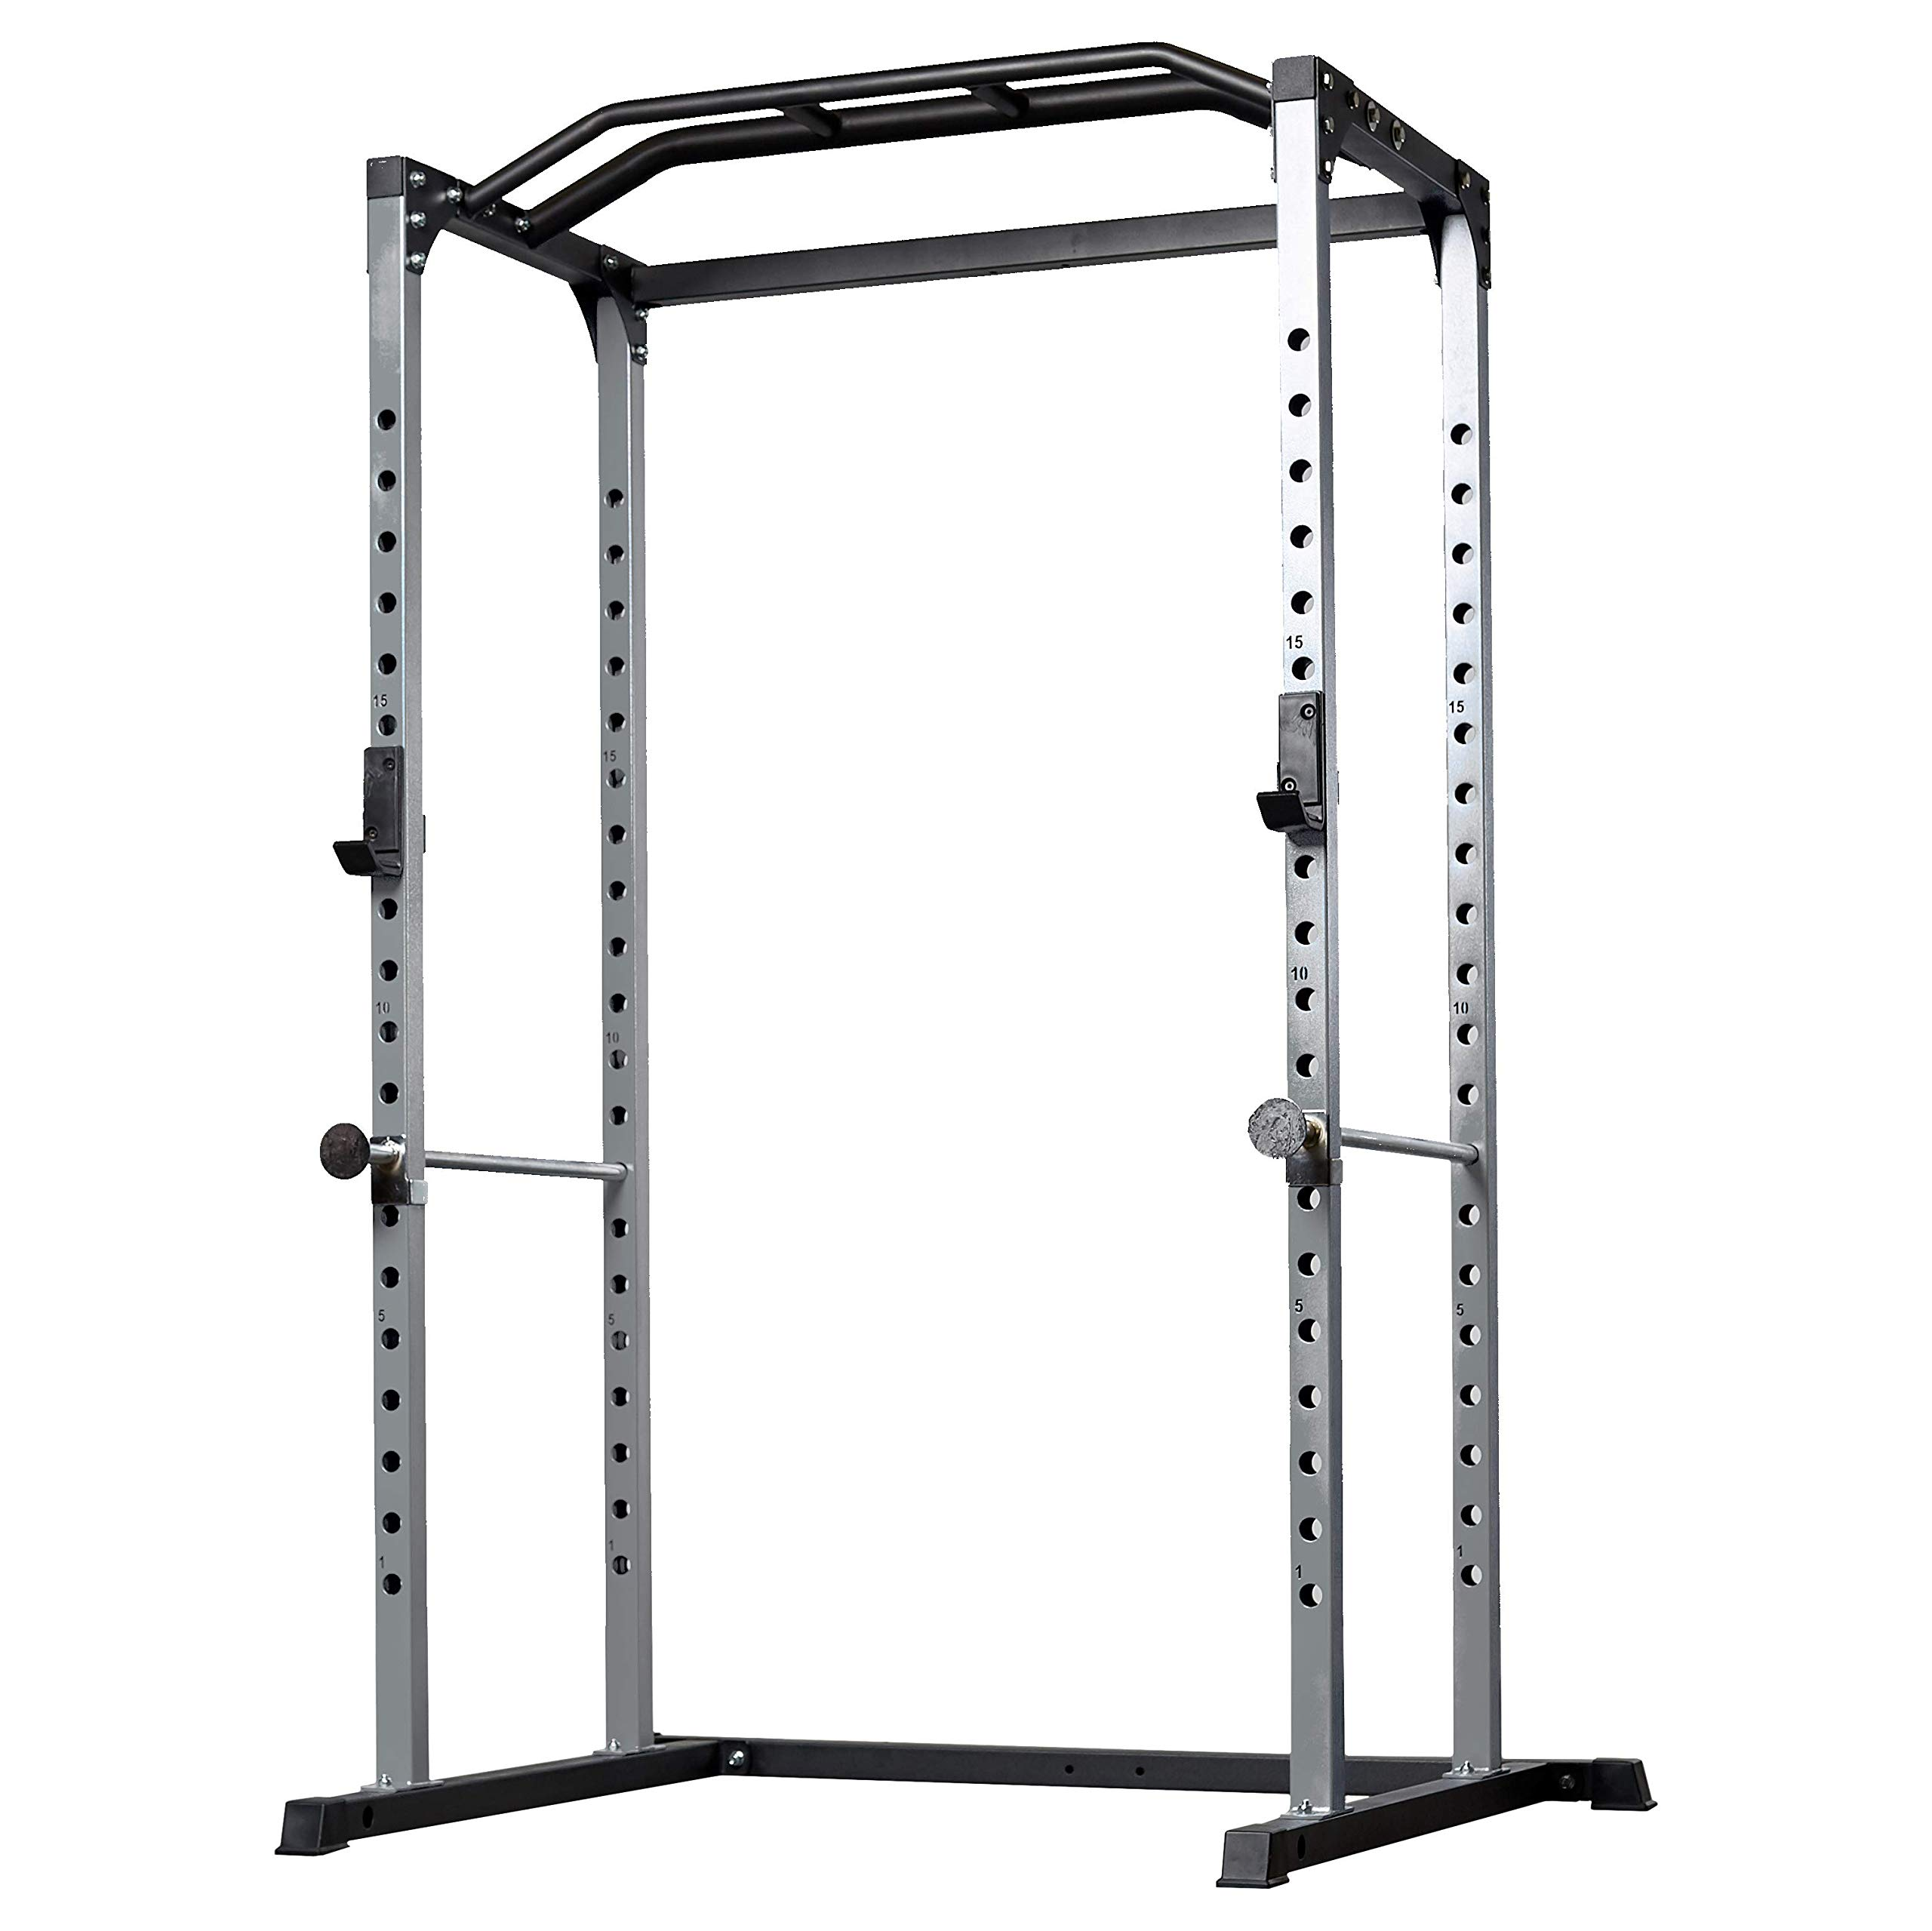 Rep PR-1100 Power Rack - 1,000 lbs Rated Lifting Cage for Weight Training (Silver Power Rack, No Bench) by Rep Fitness (Image #1)